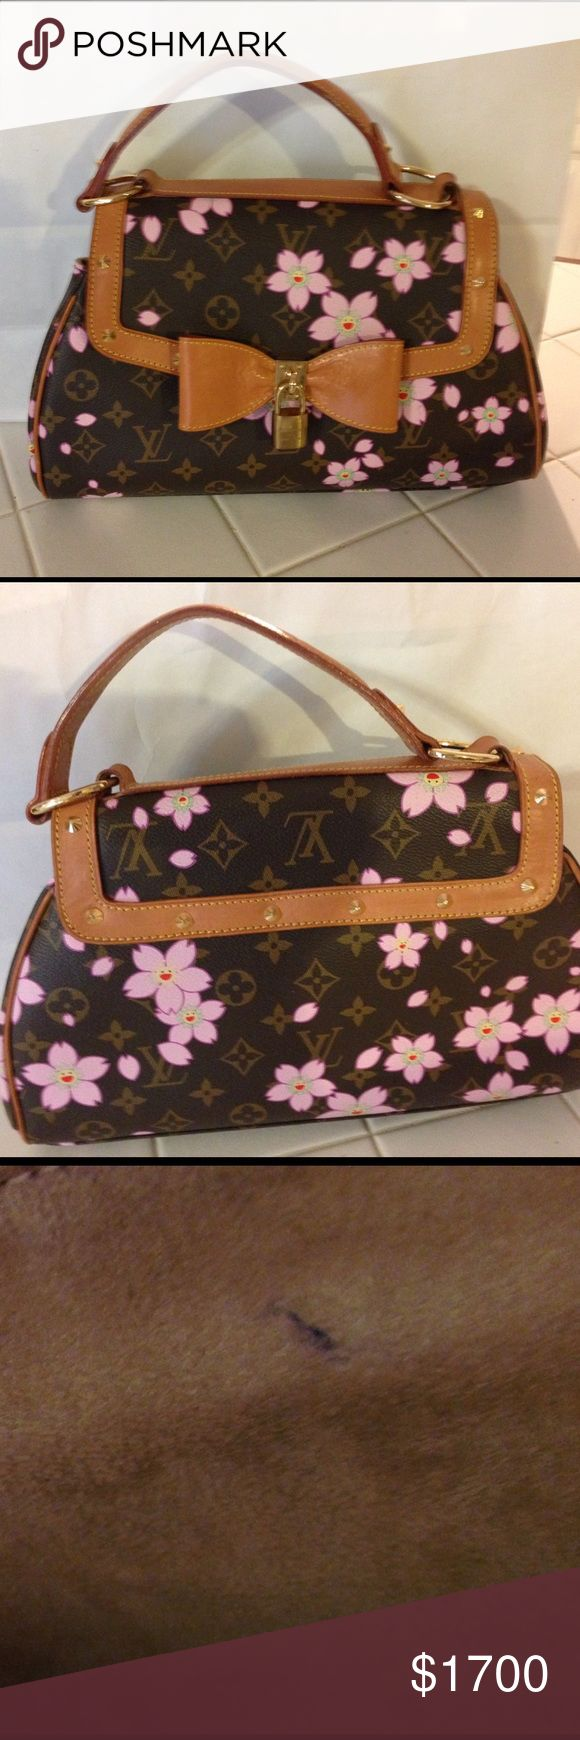 Limited Edition Takashi Mukarami Cherry Blossom Rare Limited Edition Takashi Mukarami Retro Sac PM in cherry blossom. Great condition with just a couple of very slight pen marks inside. Outside looks brand new. Comes with dust bag, padlocks and keys. Date code CA0023. Louis Vuitton Bags Satchels